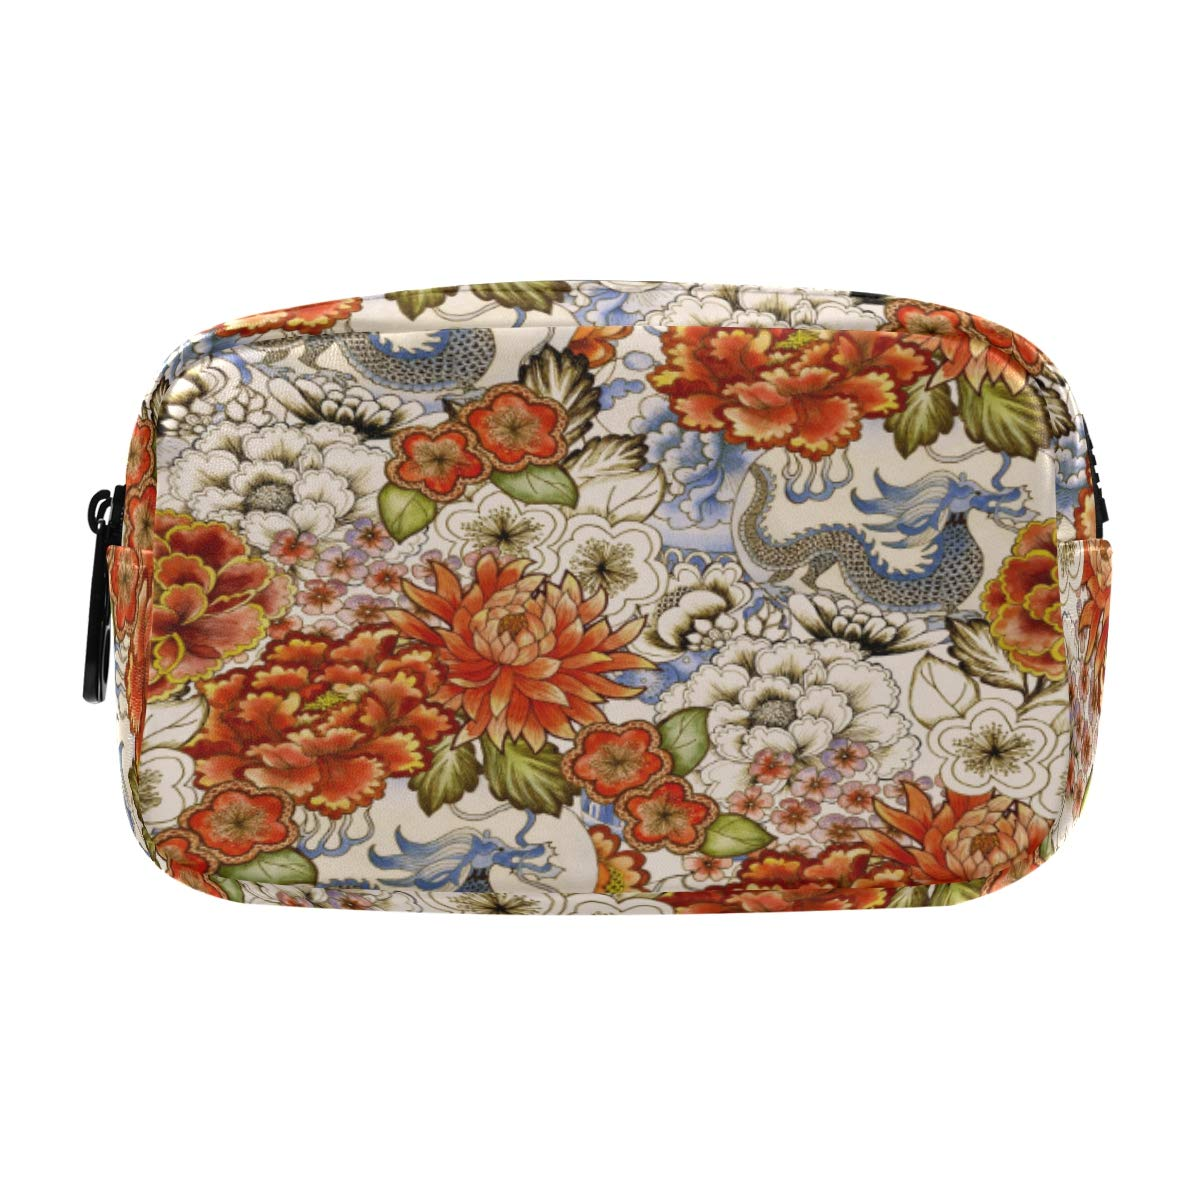 ALAZA Vintage Asian Traditional Japanese Flowers Cosmetic Bag Leather Pencil Case Waterproof Portable Travel Makeup Pouch with Zipper for Women Girls Teens